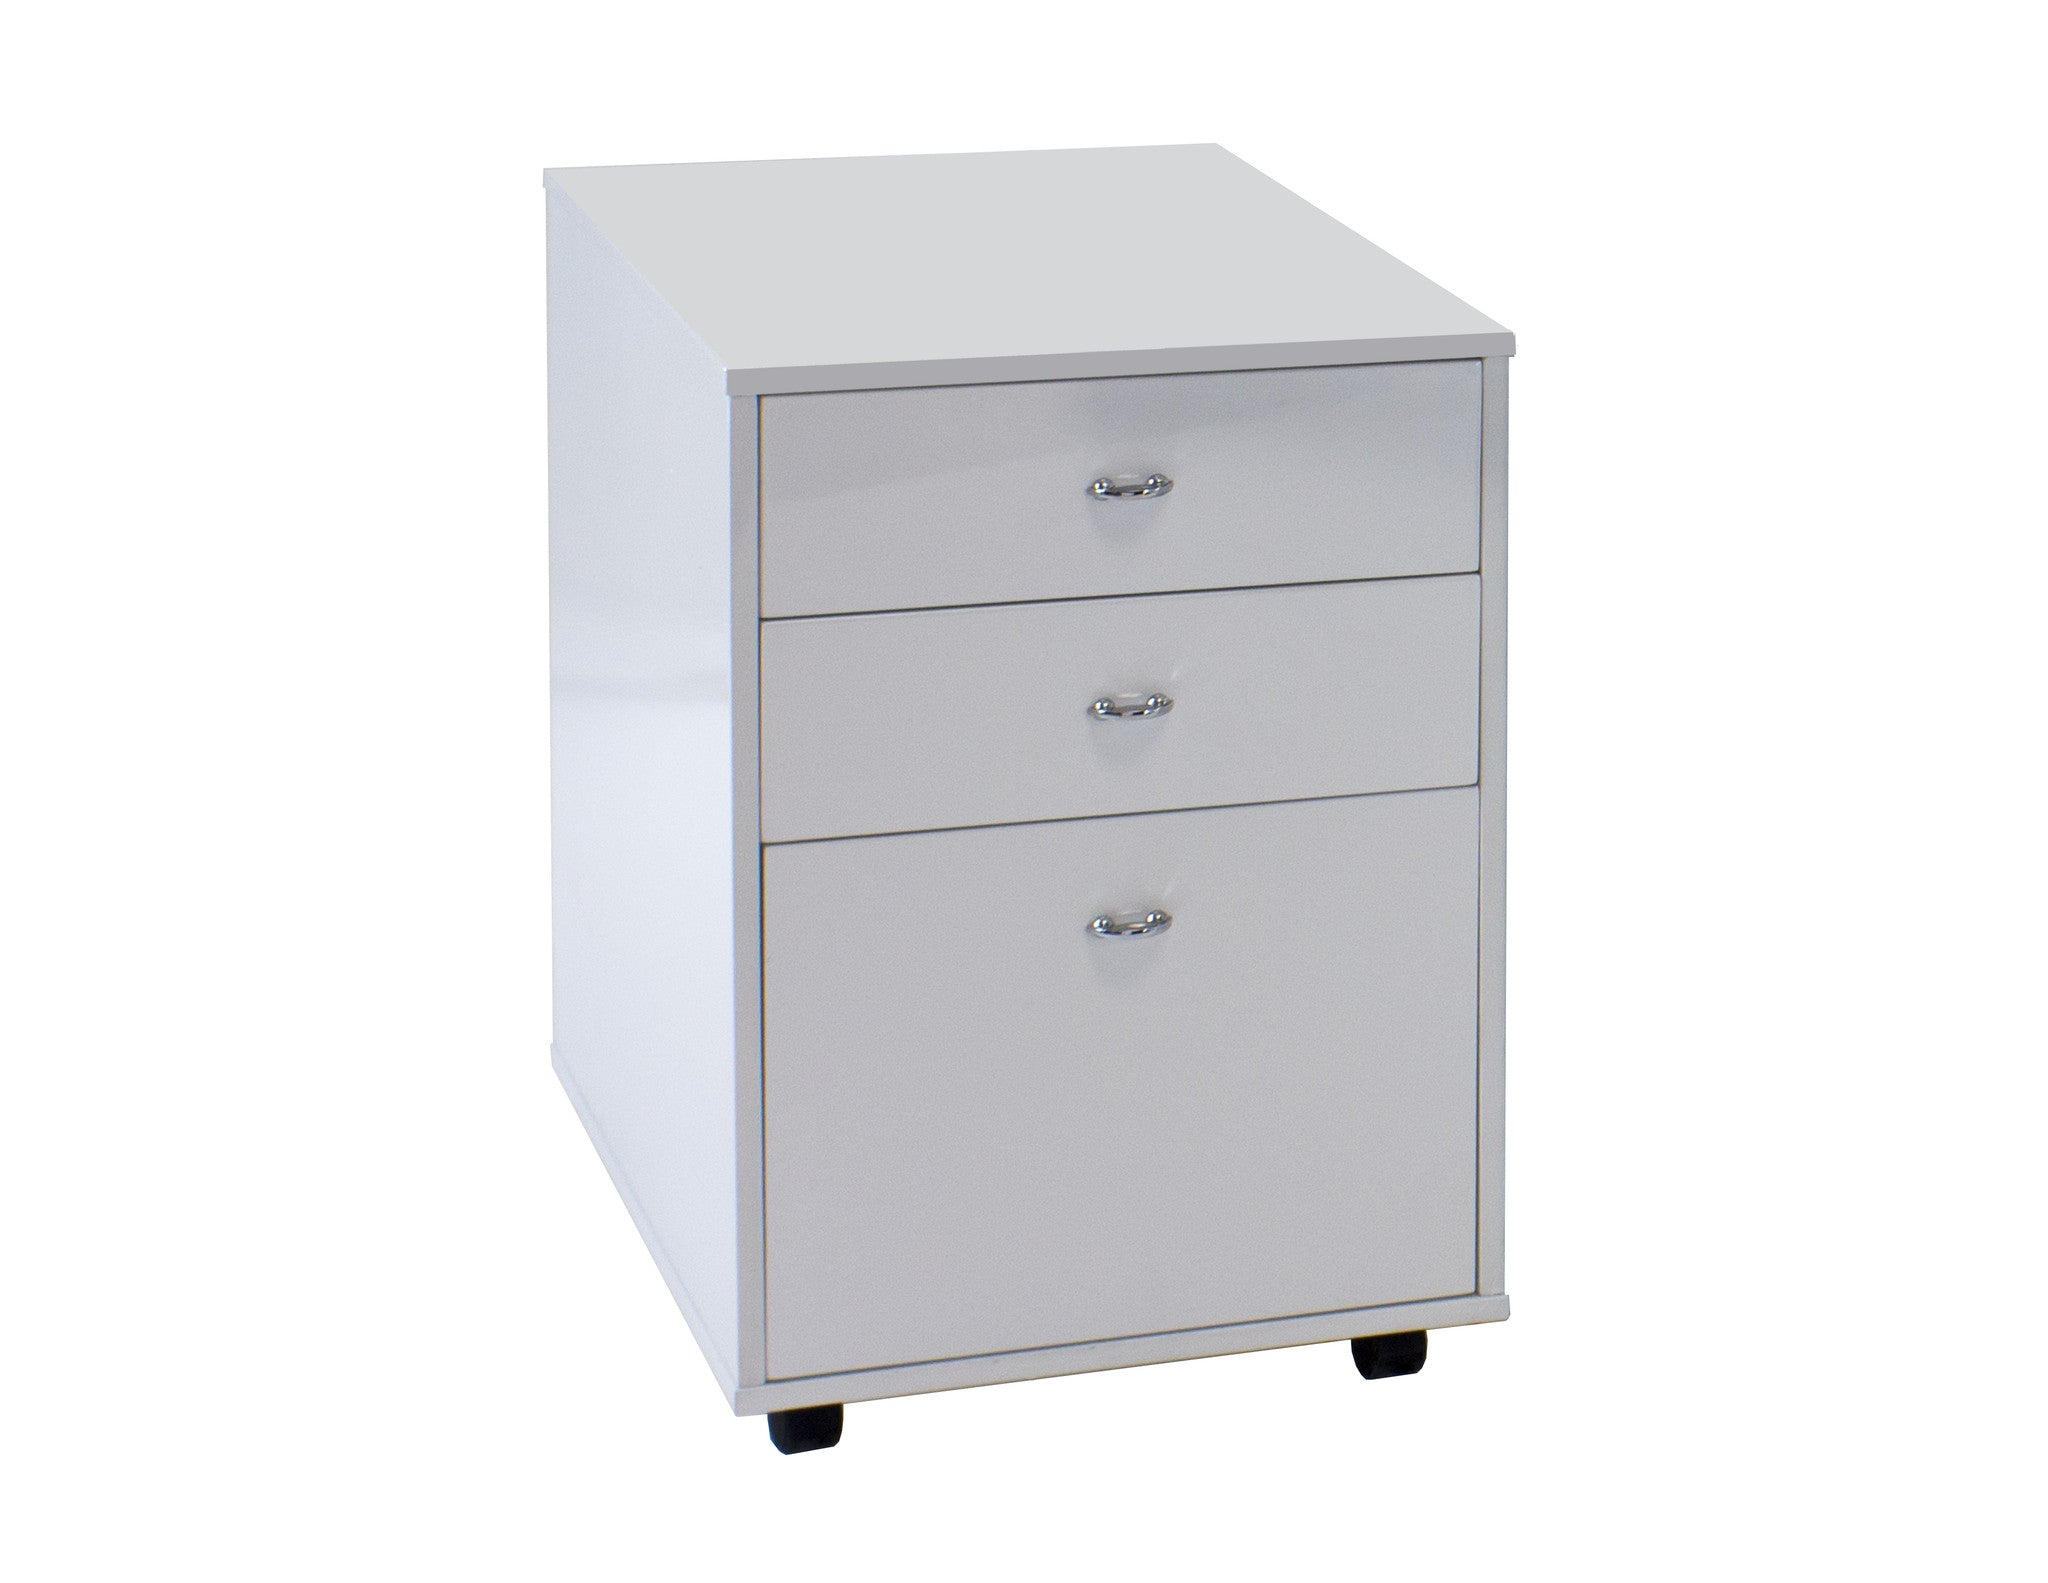 modern curved white lacquer executive desk with two mobile files. modern curved white lacquer executive desk with two mobile files